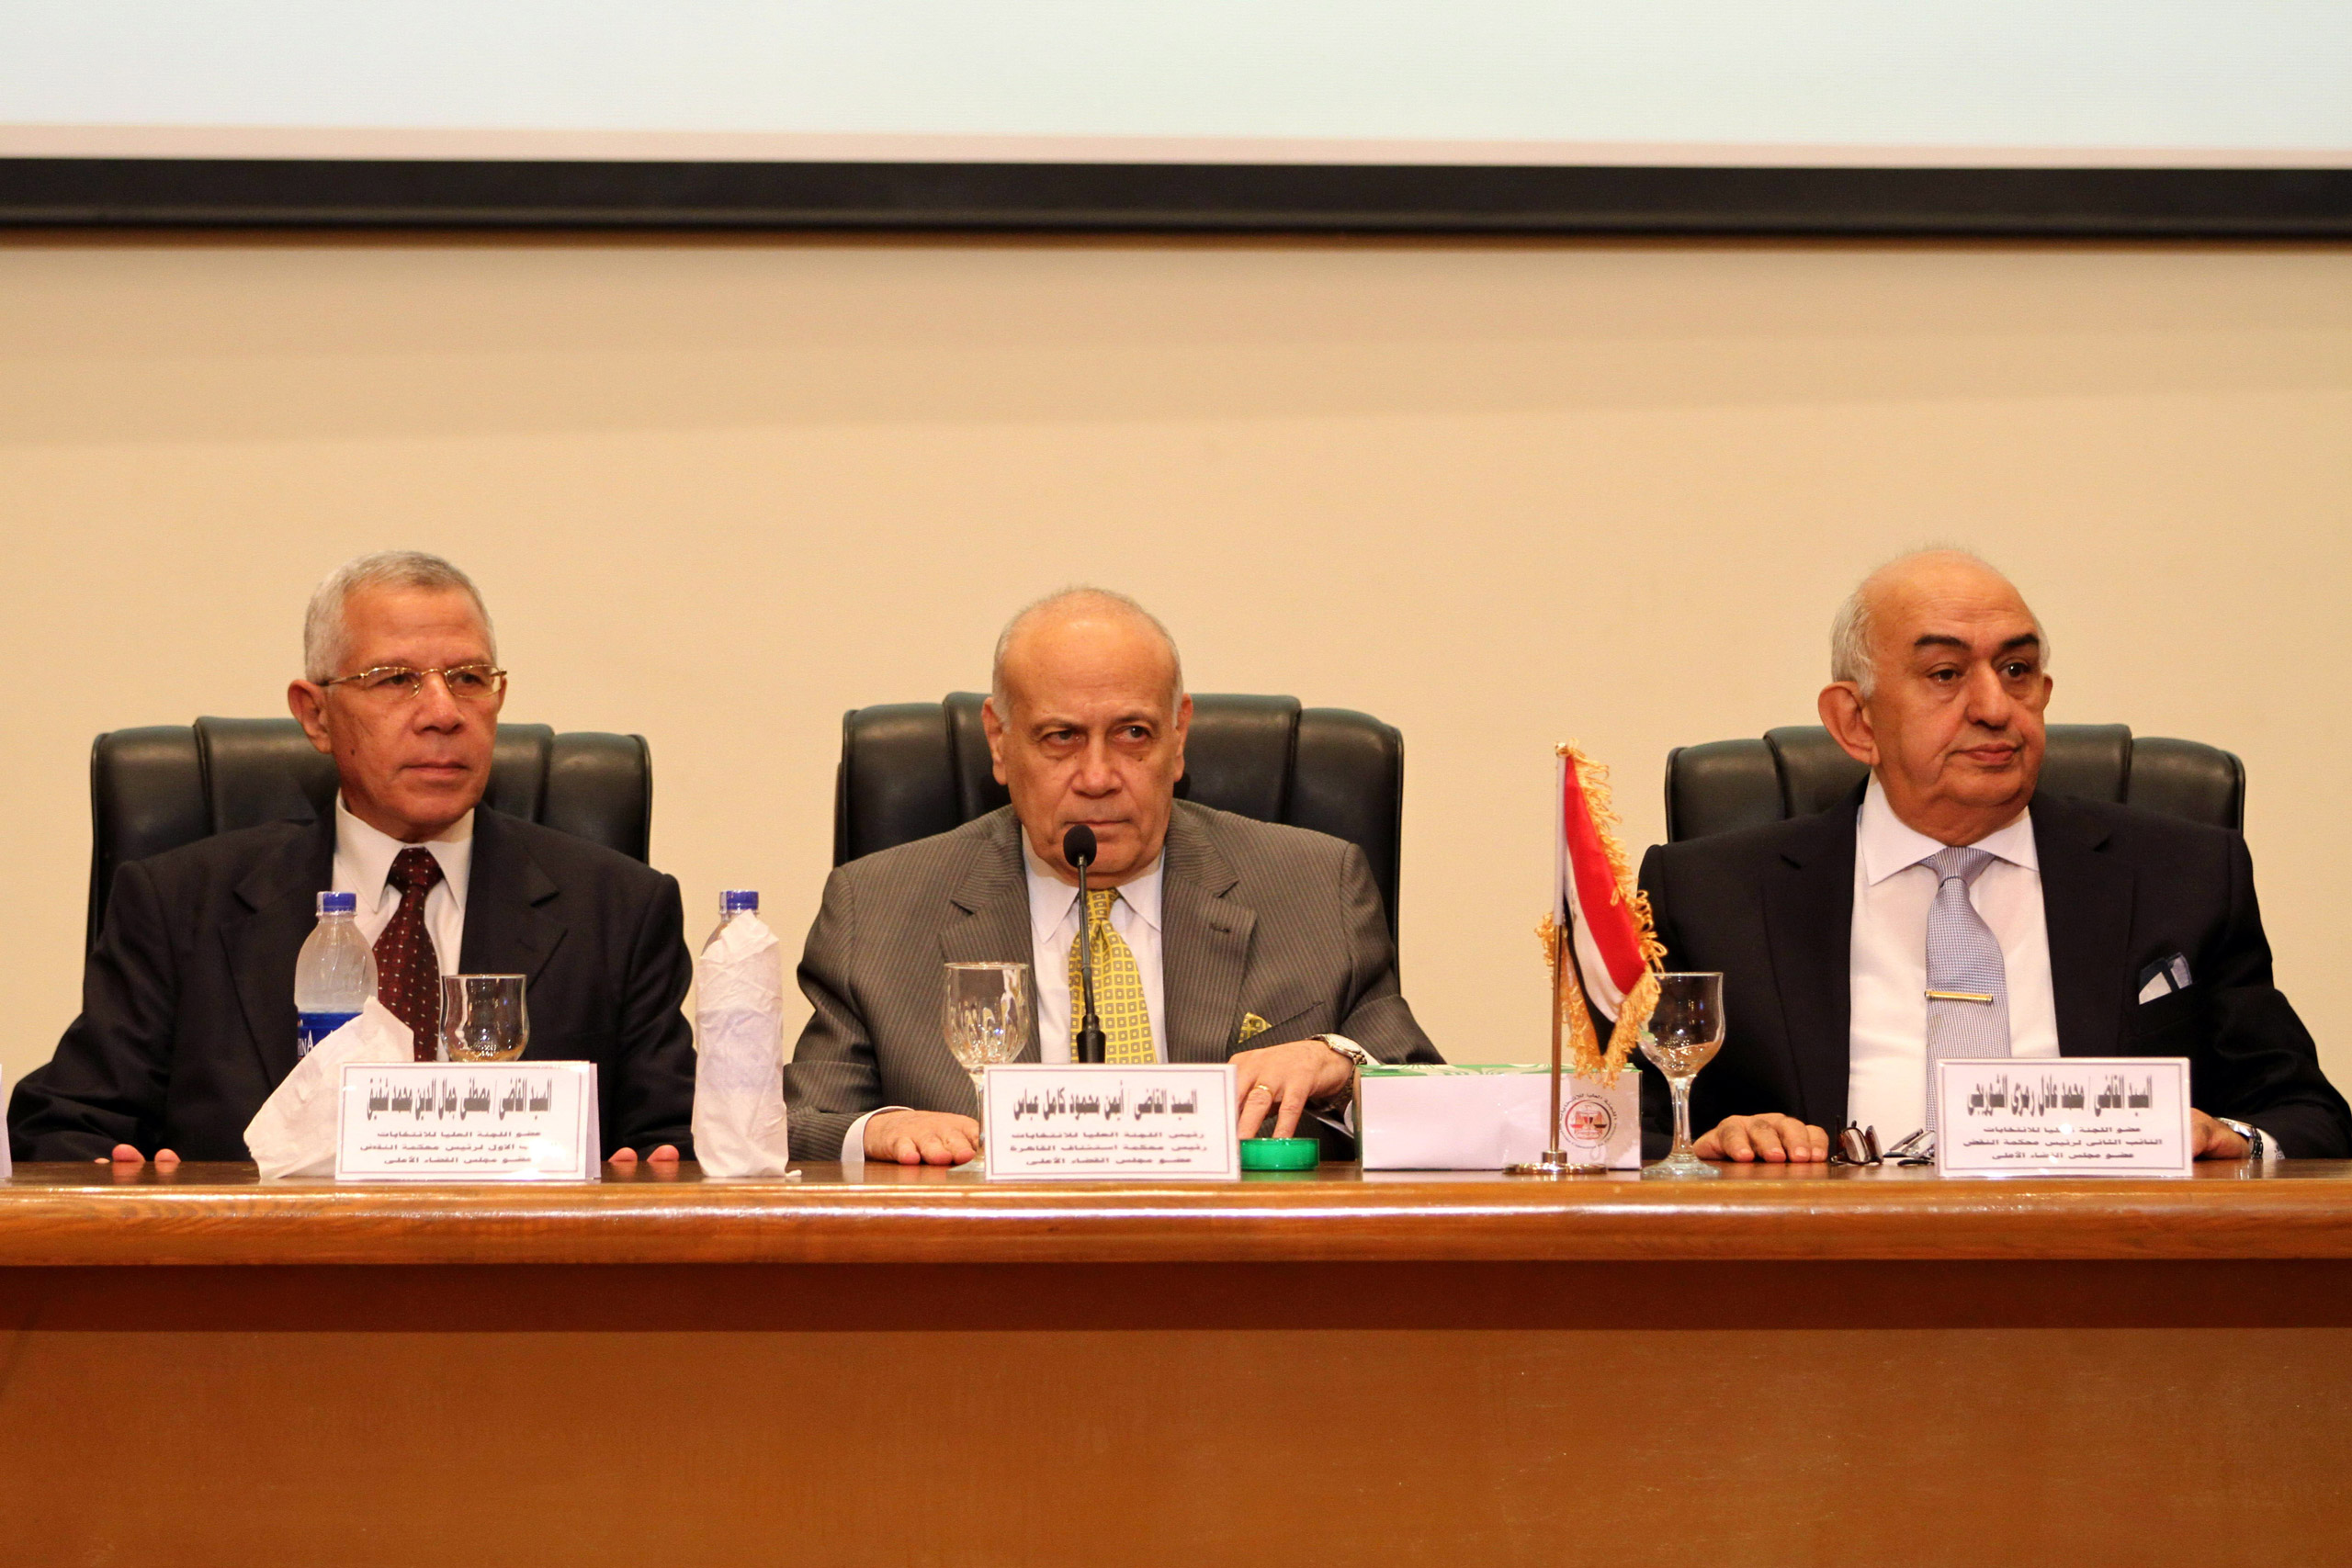 Ayman Abbas, center, head of the Supreme Election Committee, announces the dates for Egypt's parliamentary elections at a news conference in Cairo, on Aug. 30, 2015.